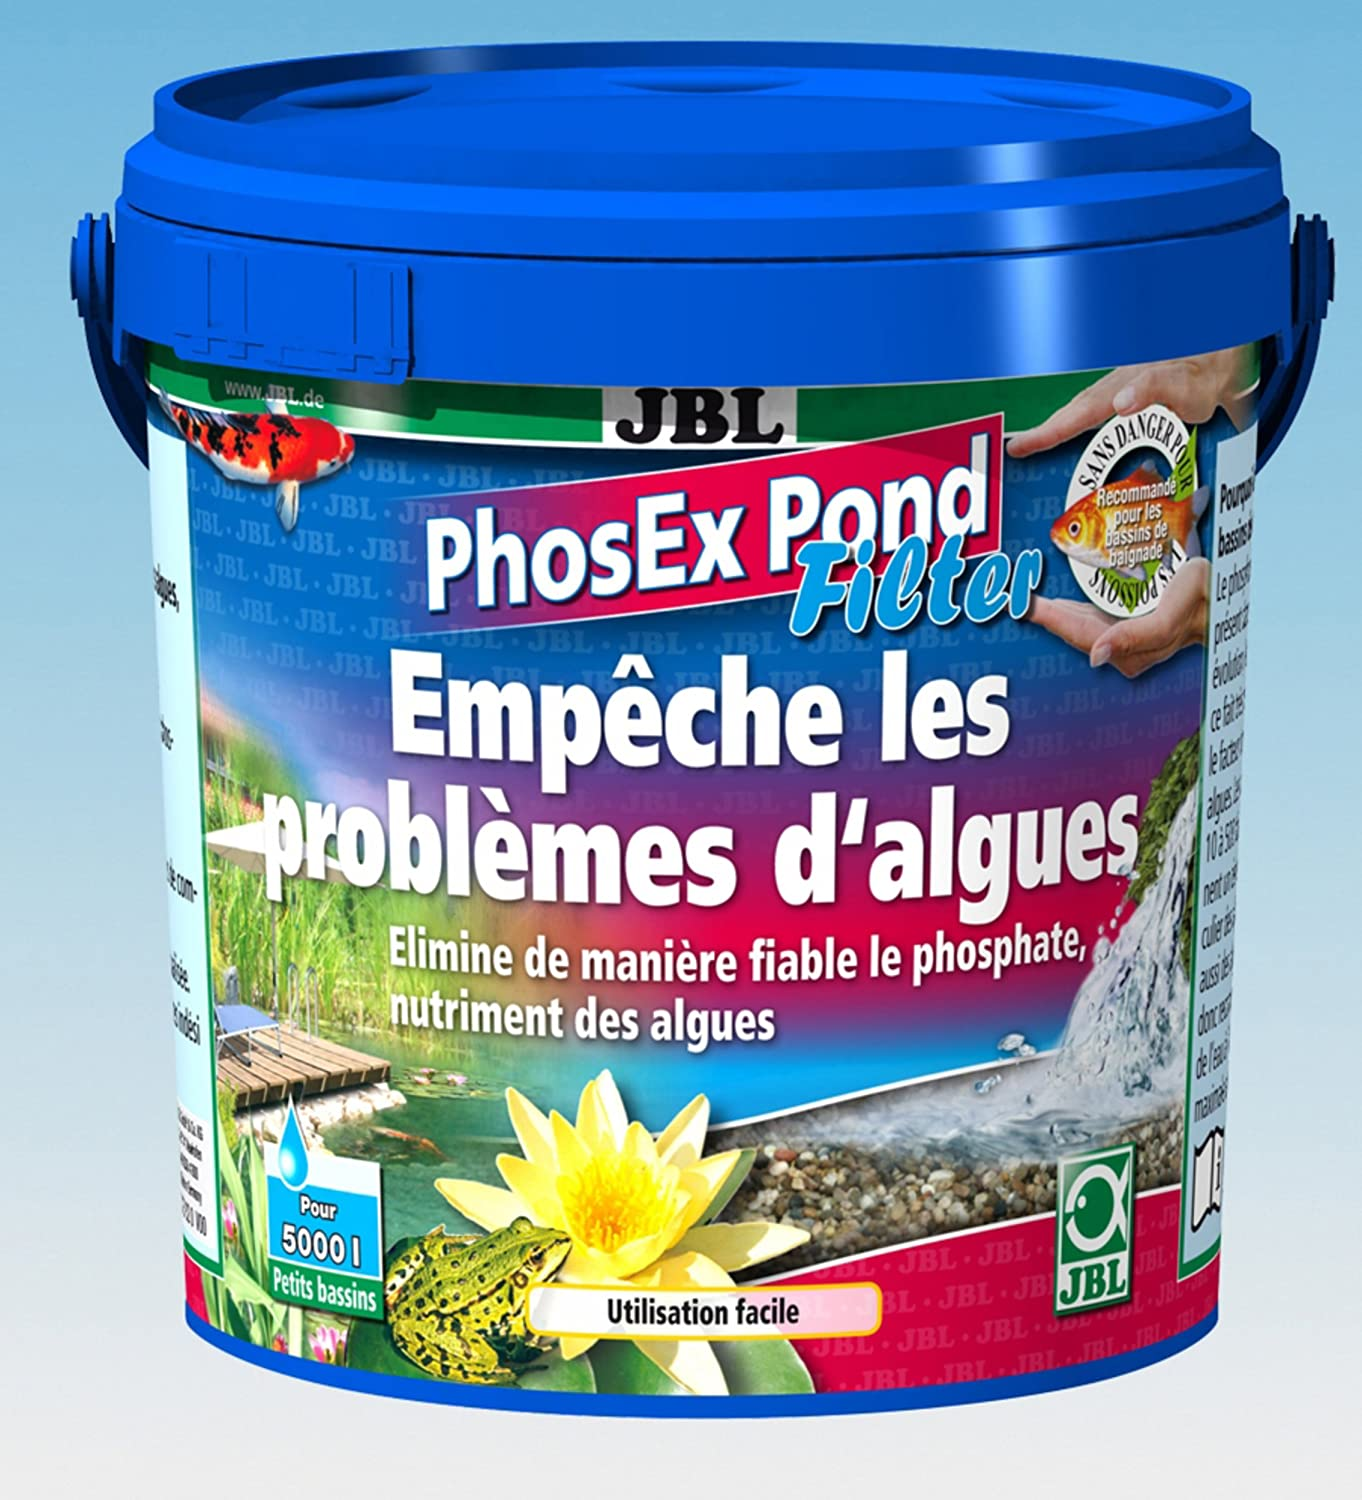 JBL Phosex Pond Filter pour Aquariophilie Marron 500 g/1 L 2737382